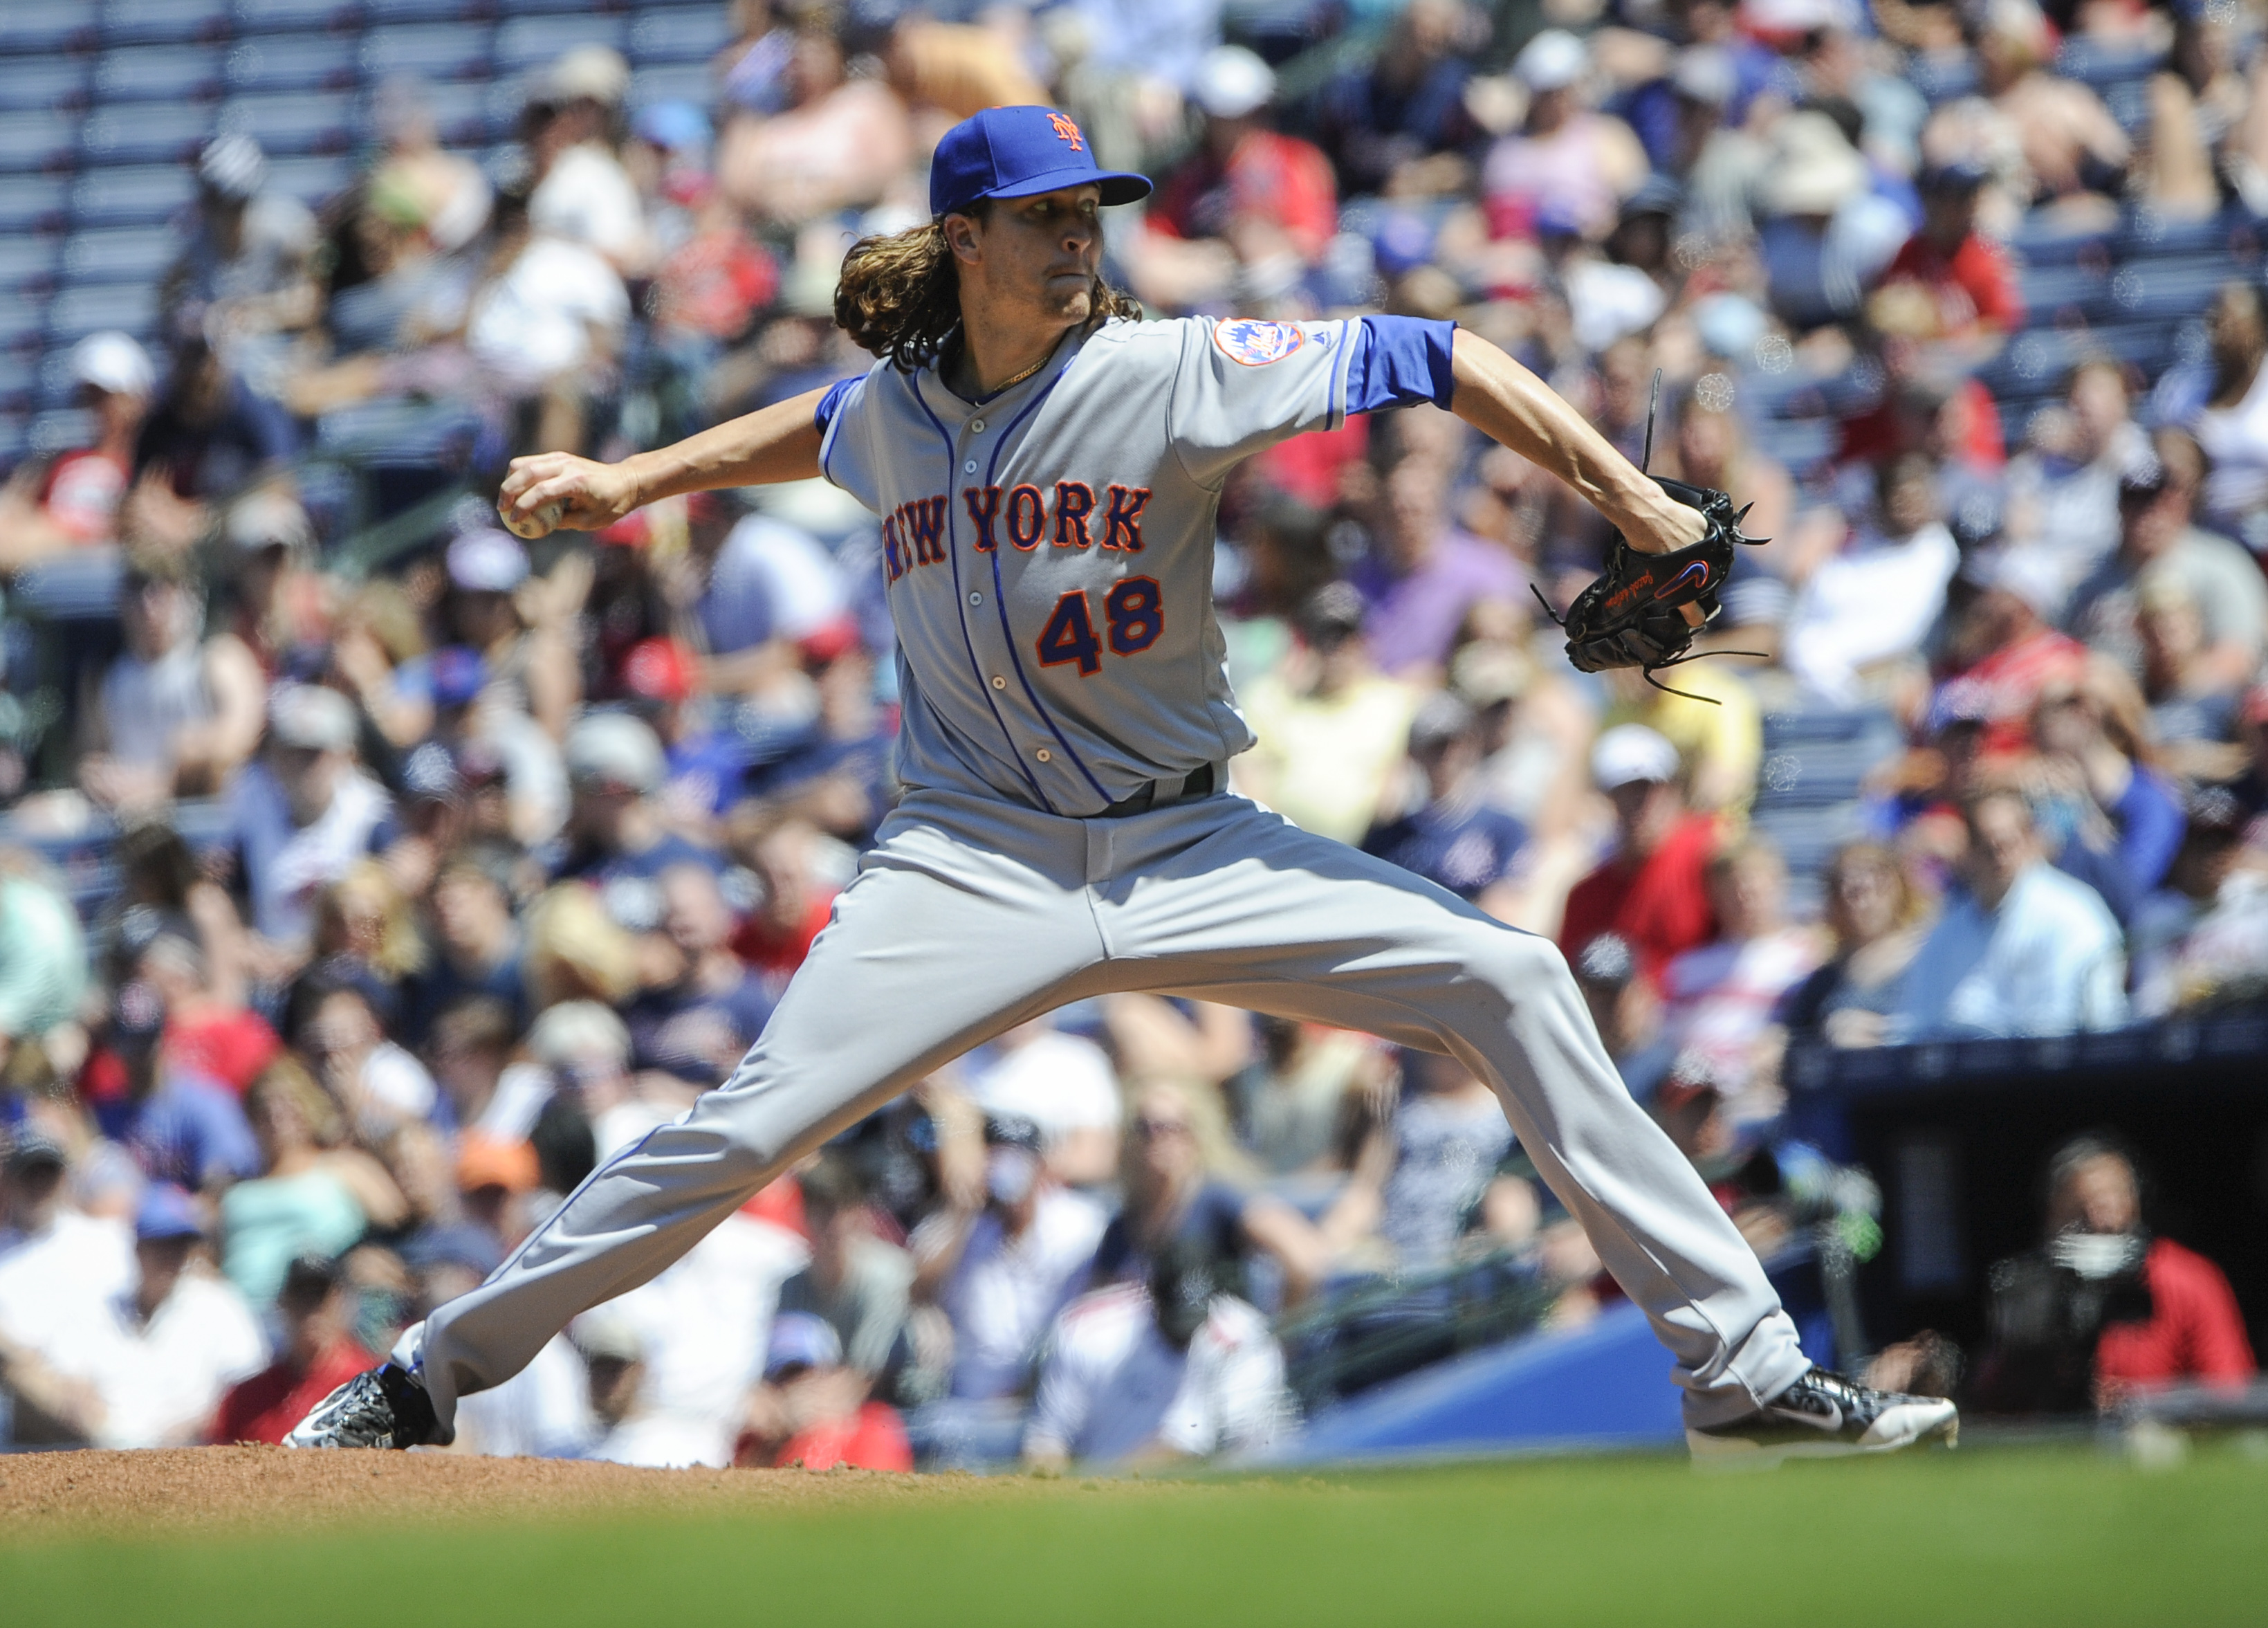 New York Mets' Jacob deGrom delivers a pitch against the Atlanta Braves during the sixth inning of a baseball game, Sunday, April 24, 2016, in Atlanta. (AP Photo/John Amis)